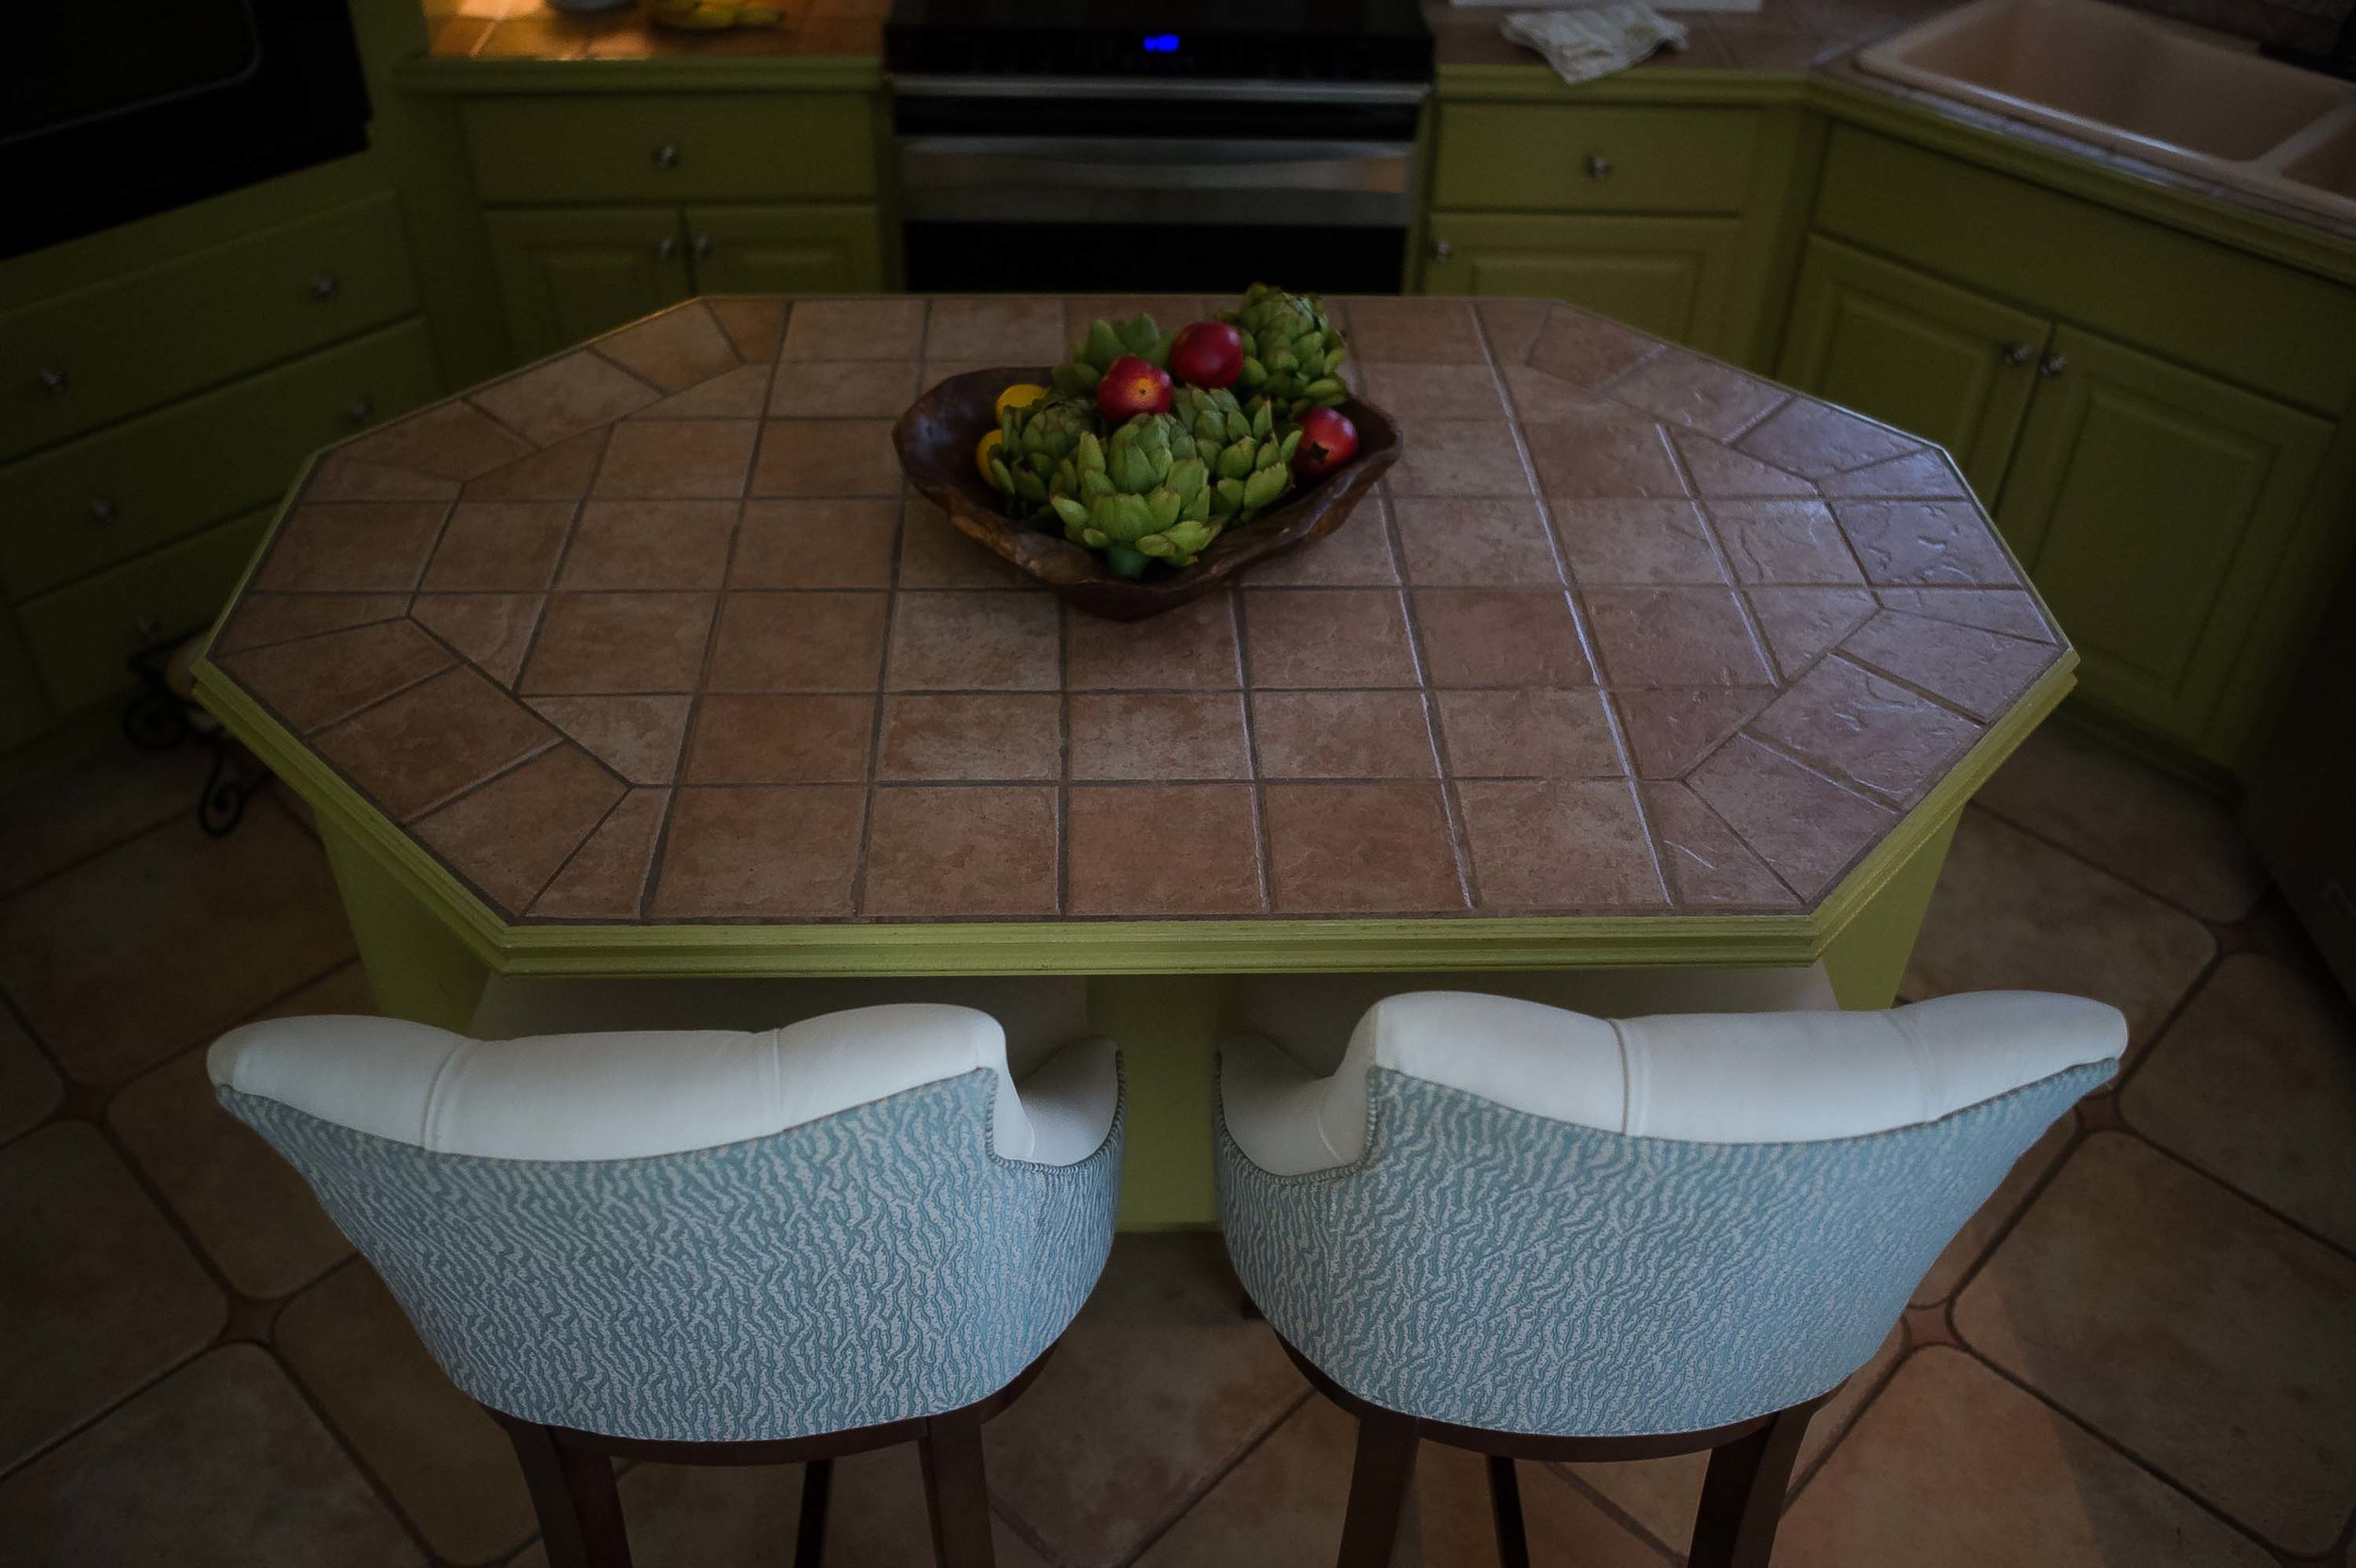 Kitchen with chairs and ceramic center island